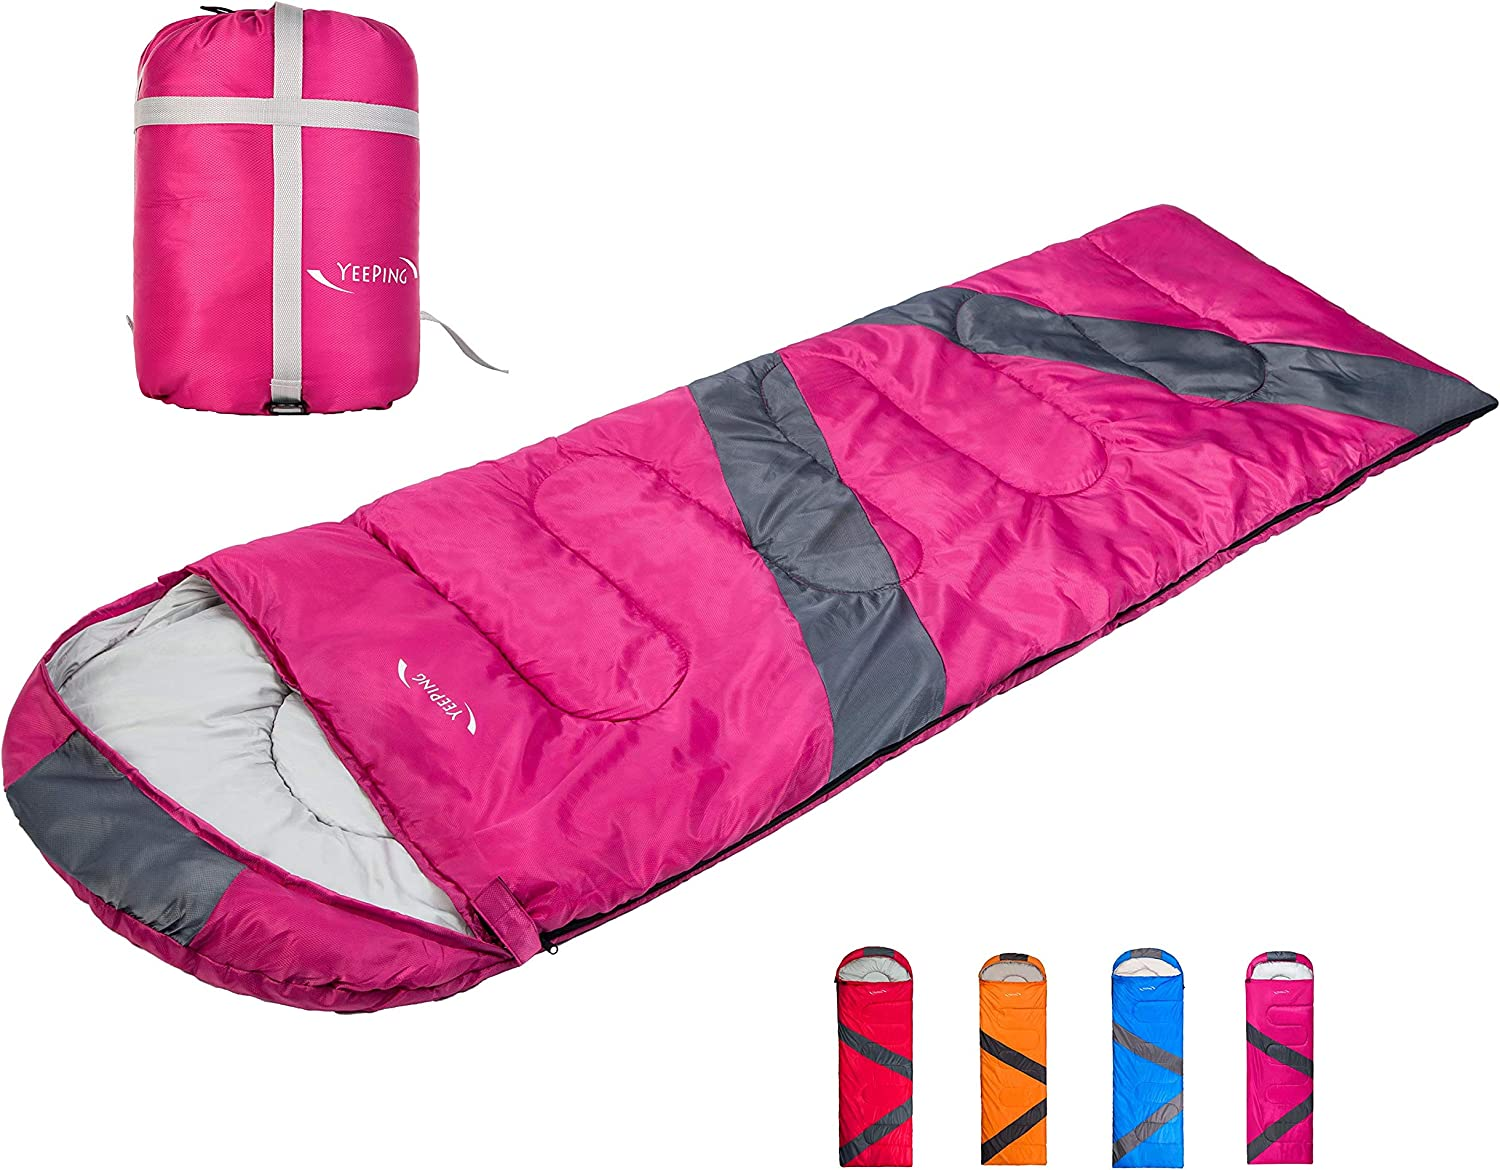 Yeeping 3-4 Season Envelope Sleeping Bag with Compression Sack - Waterproof, 20 Degree Fahrenheit, 3 Lbs Filling, Great for Kids, Youth and Adults, Hiking/Camping/Traveling, Warm & Cozy